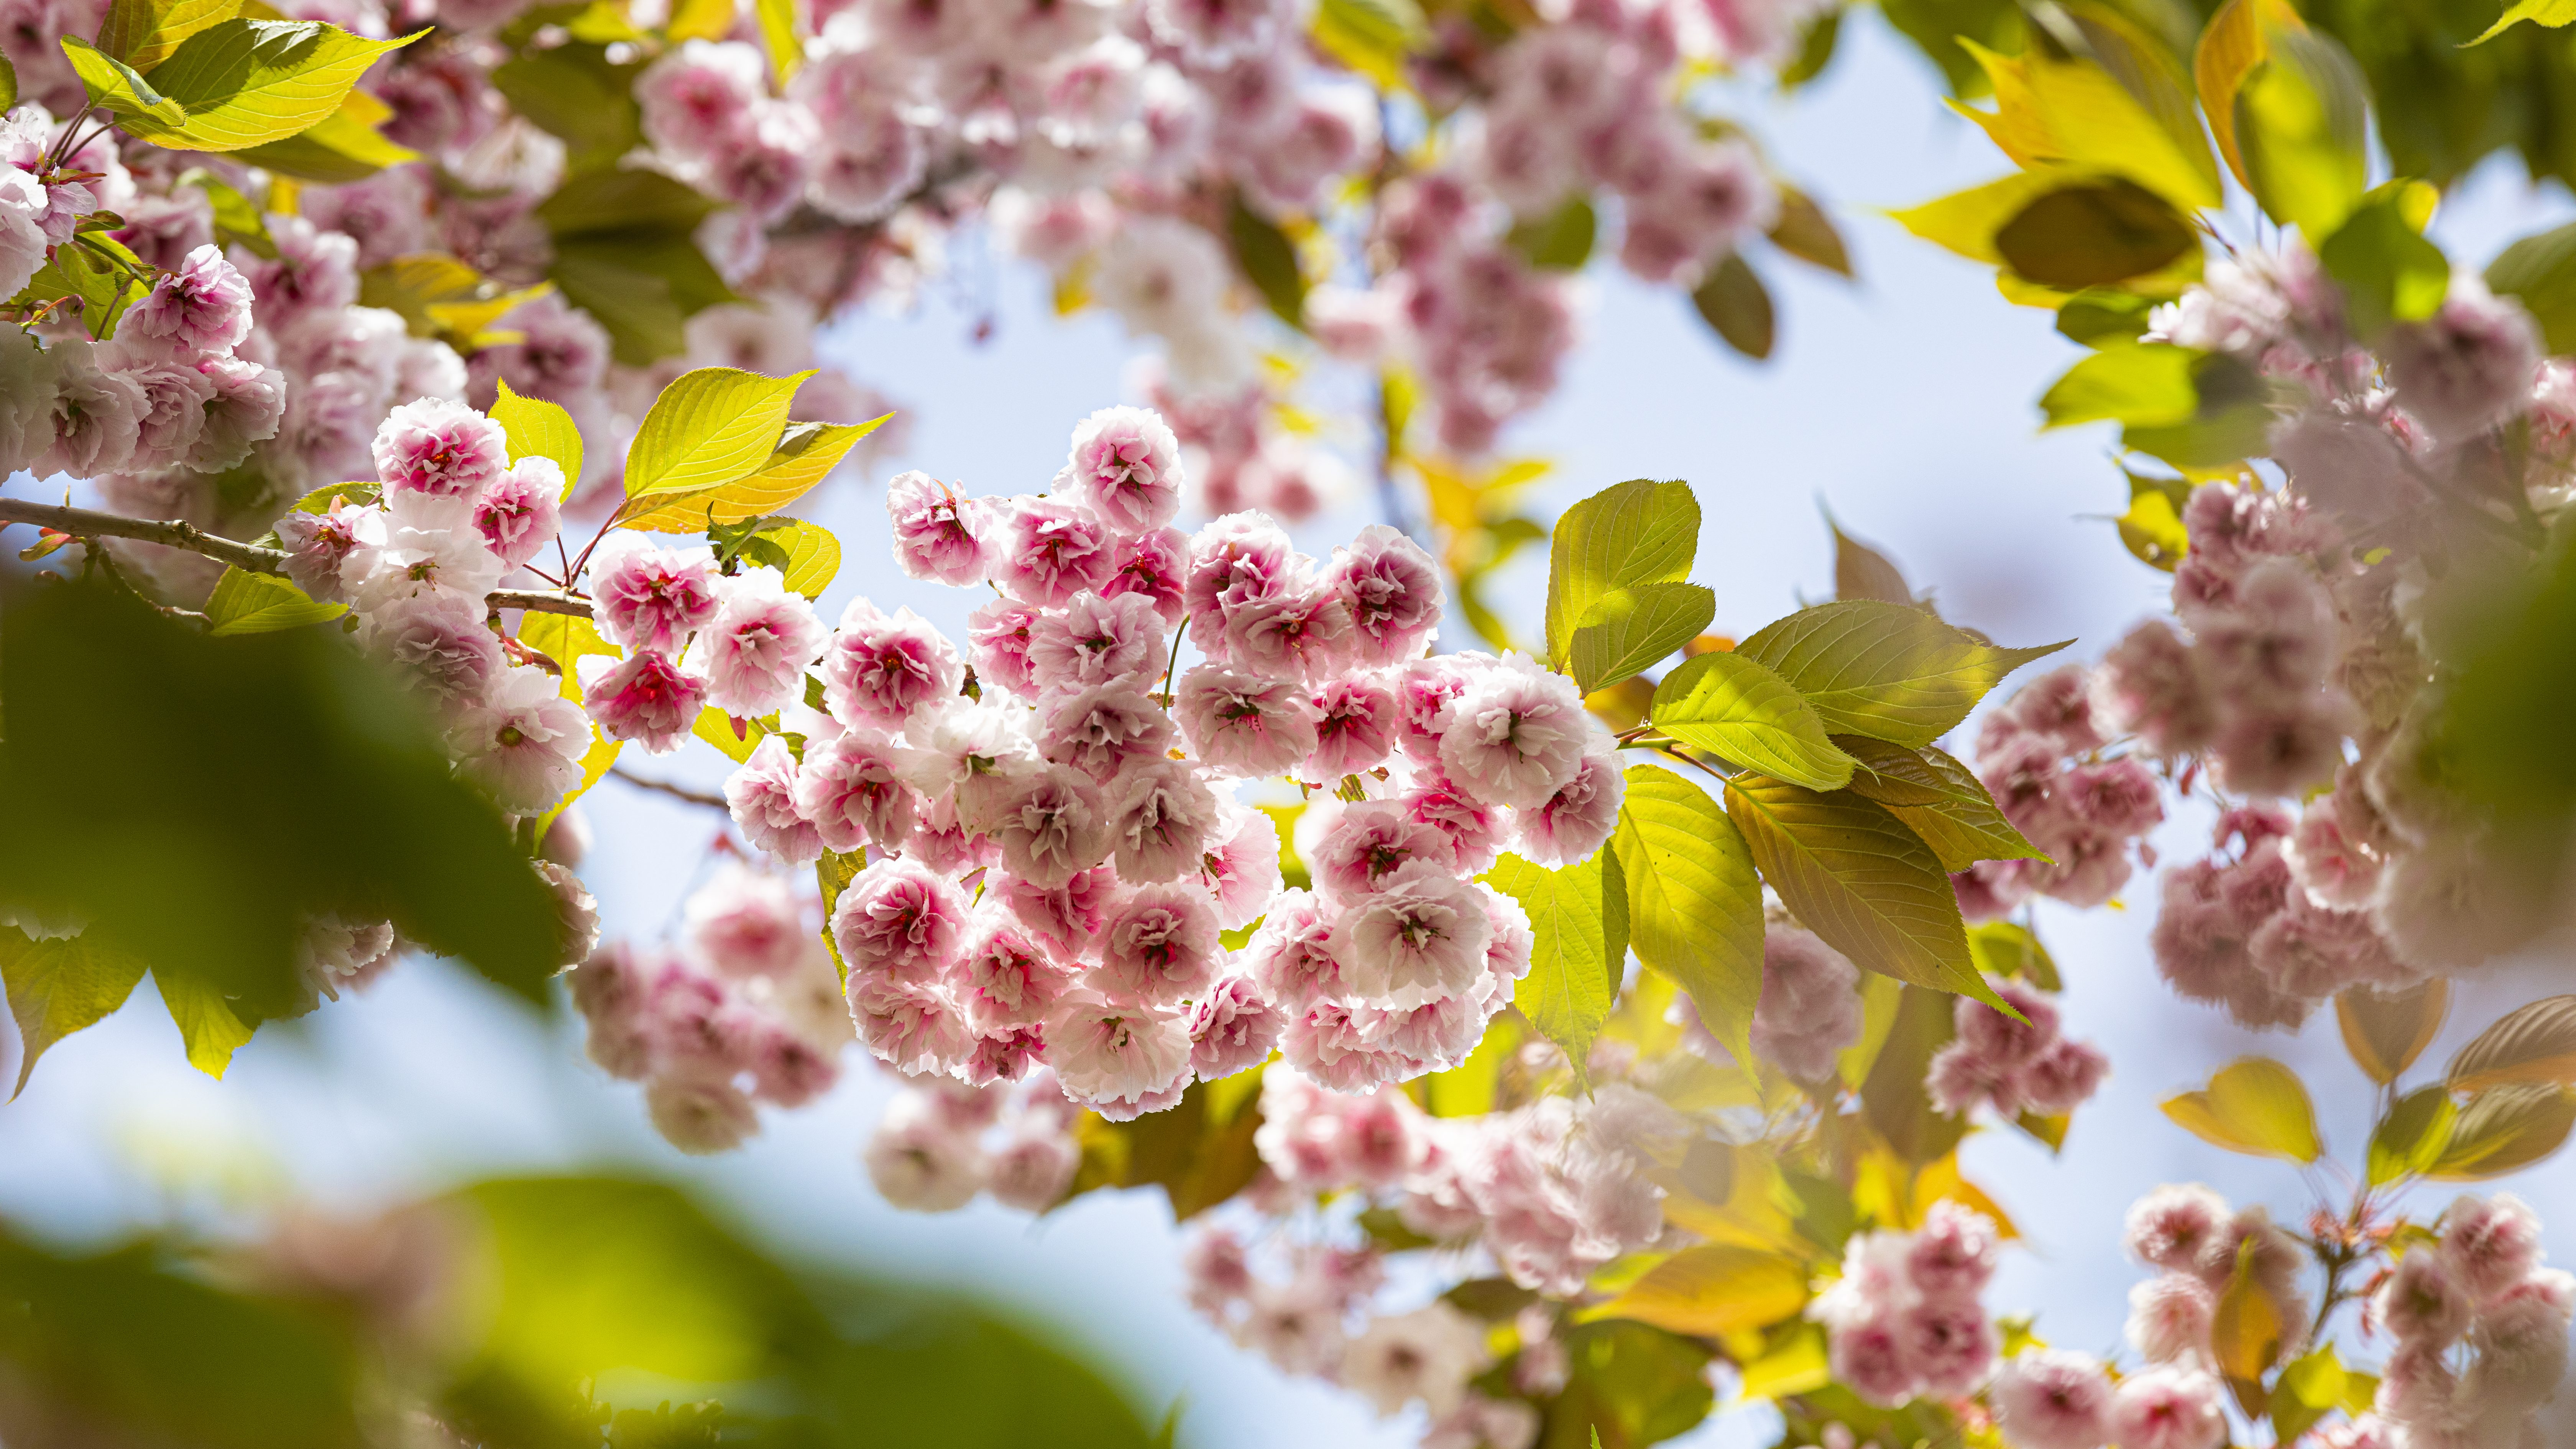 up-close shot of blossoms on a cherry tree